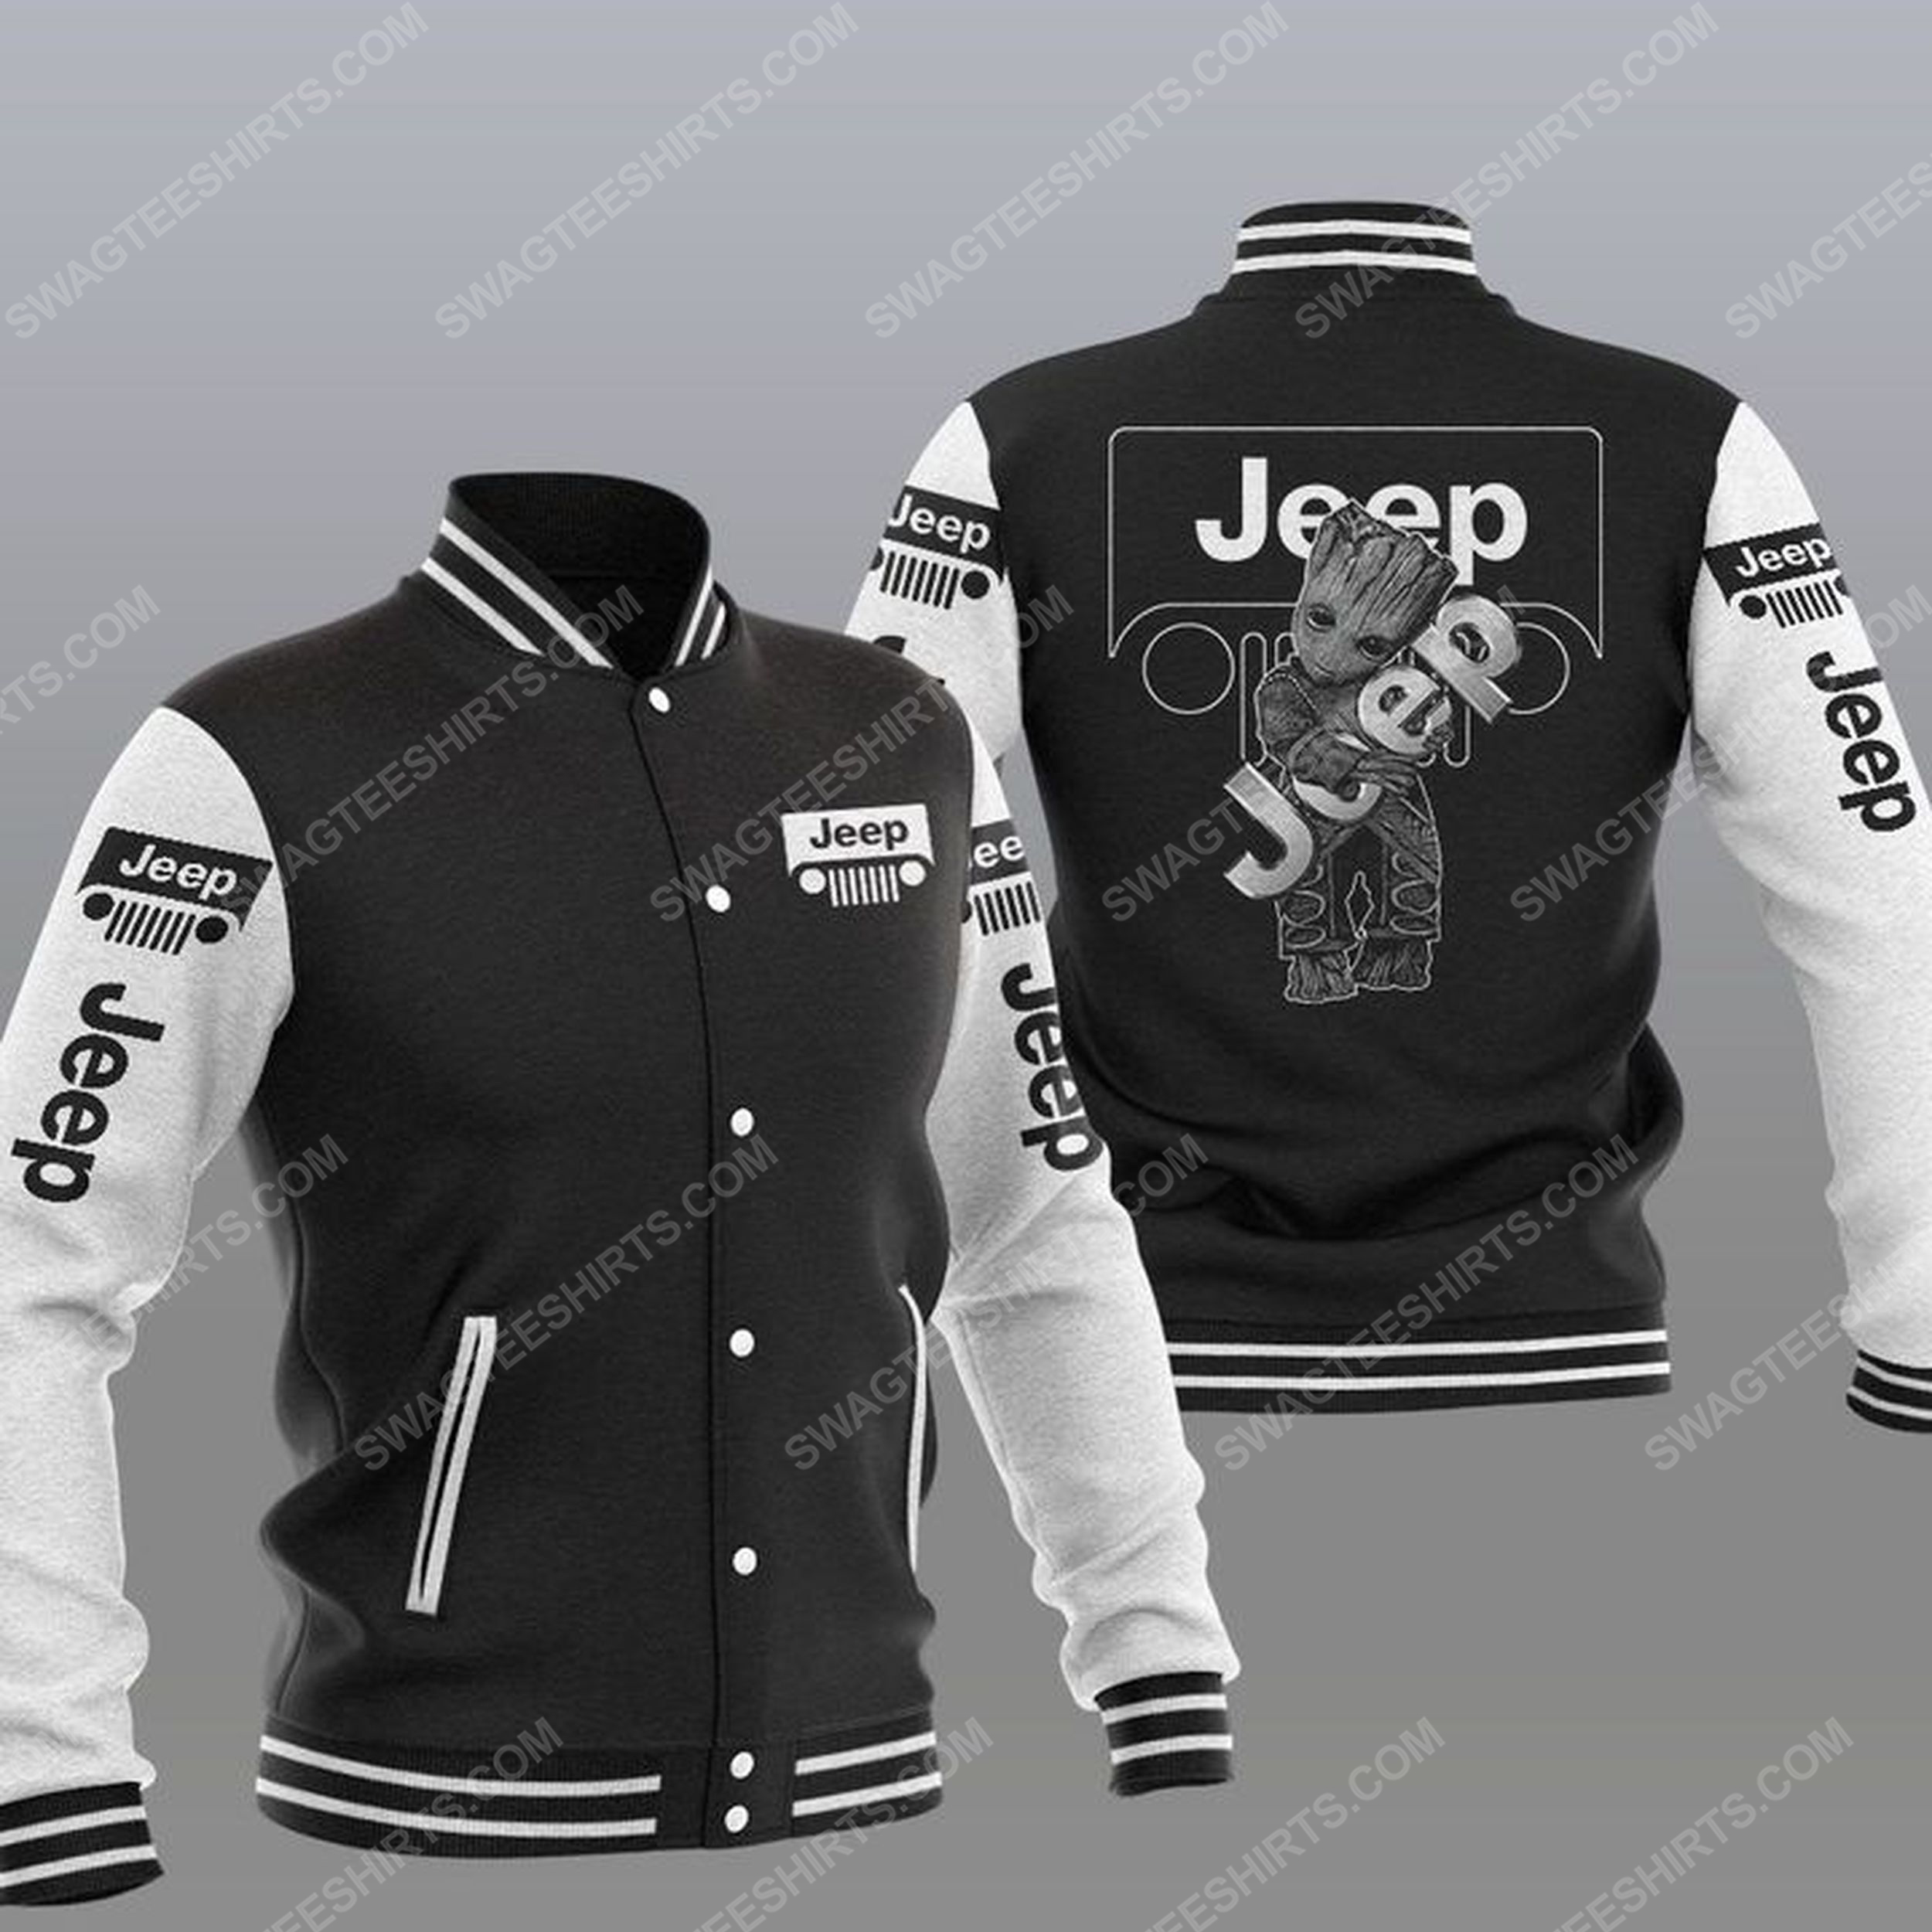 Baby groot and jeep all over print baseball jacket - black 1